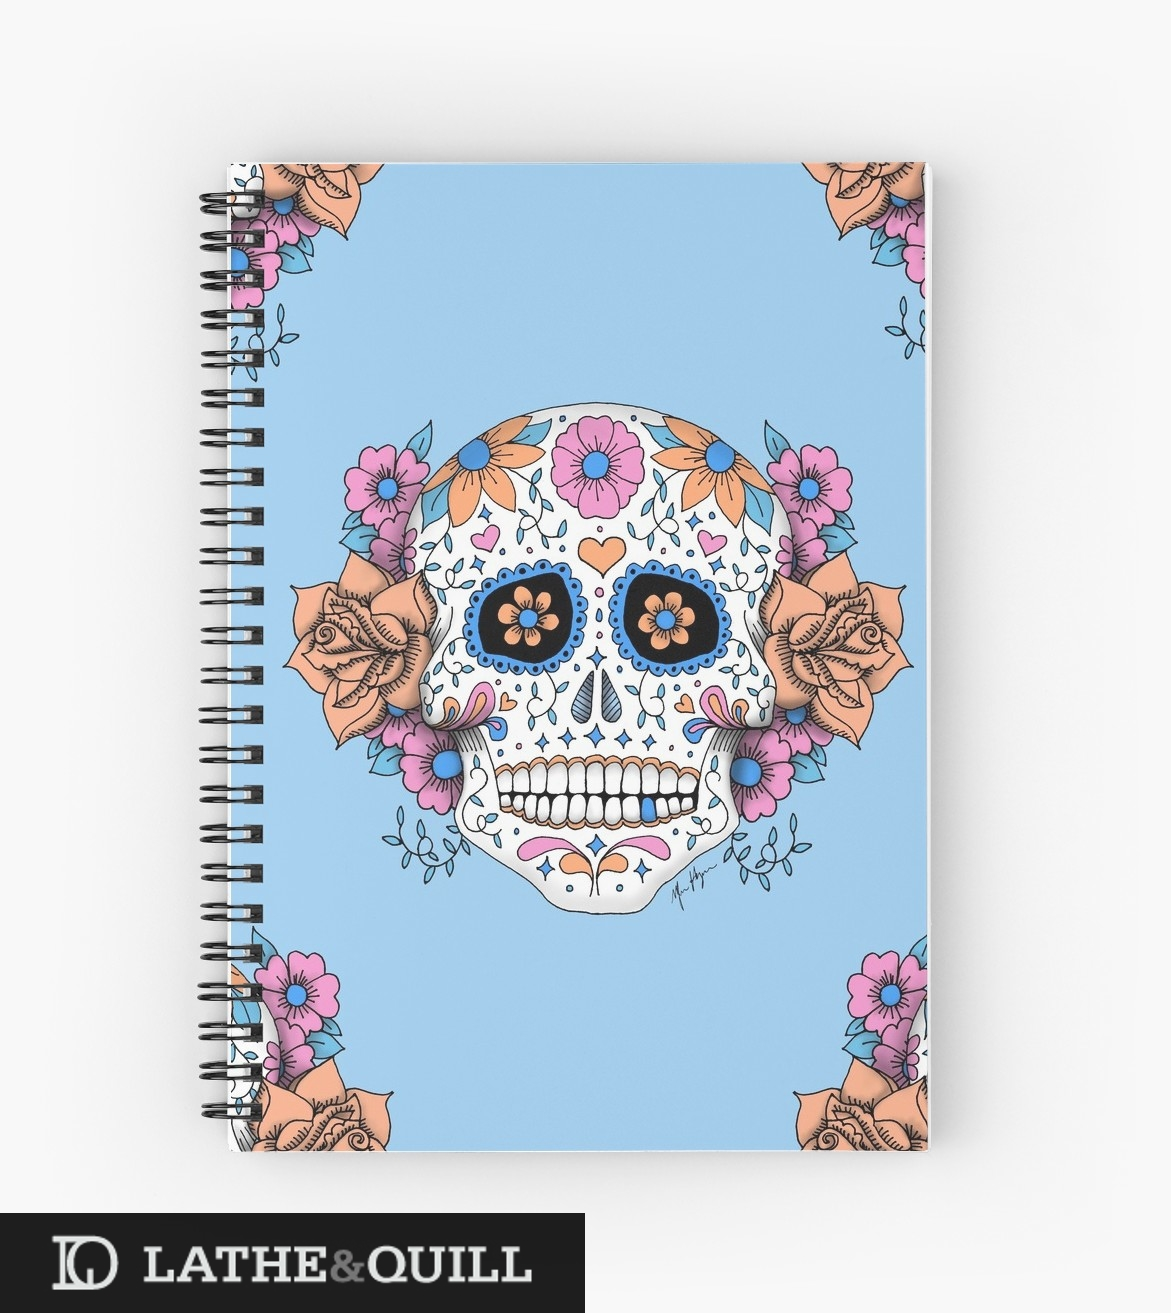 Get ready for Fall with this dia de los muertos inspired design